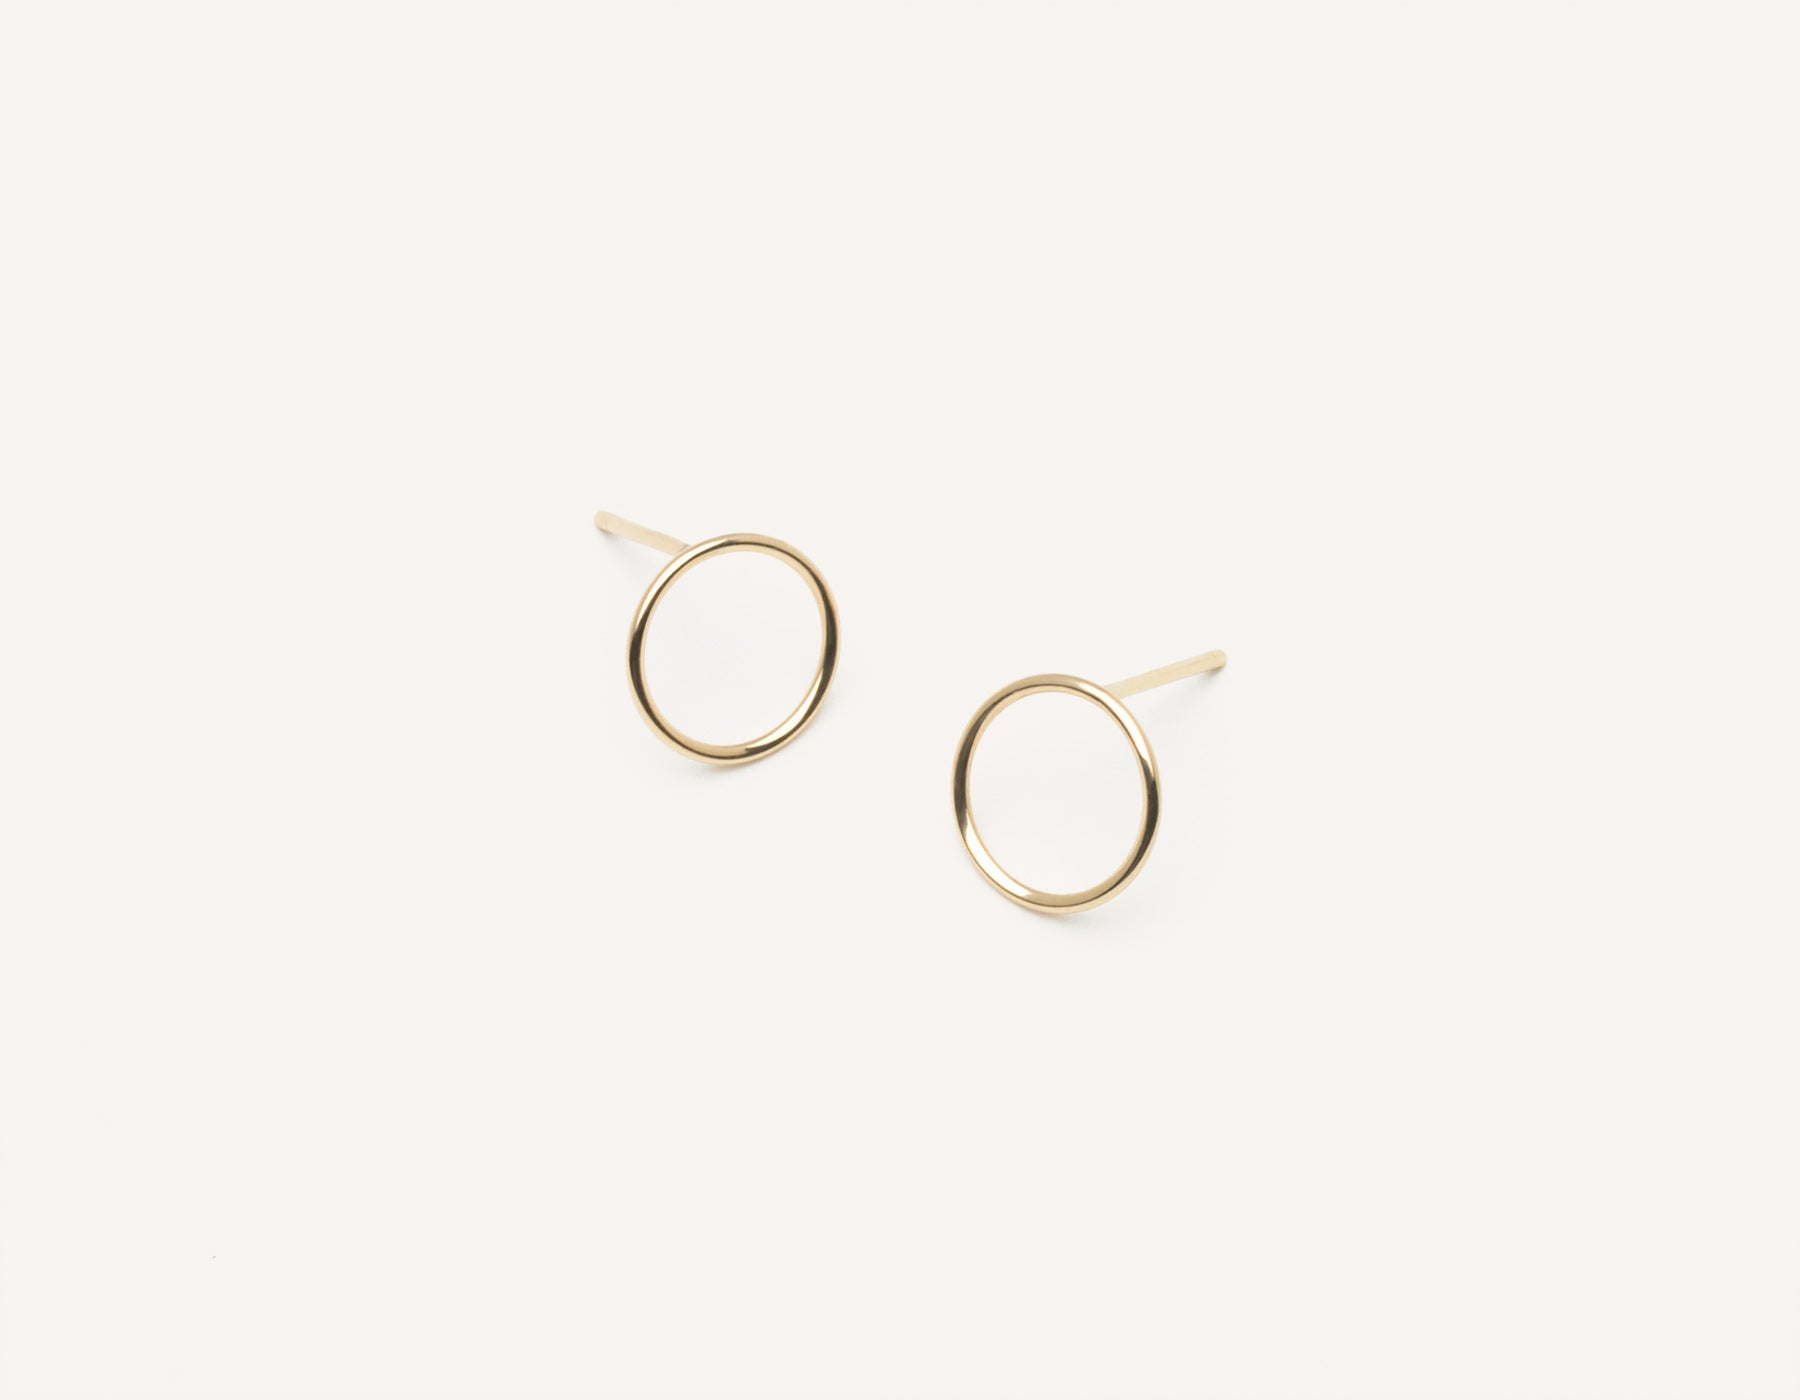 Simple classic Circle Stud Earrings 14k solid gold Vrai & Oro minimalist jewelry, 14K Yellow Gold